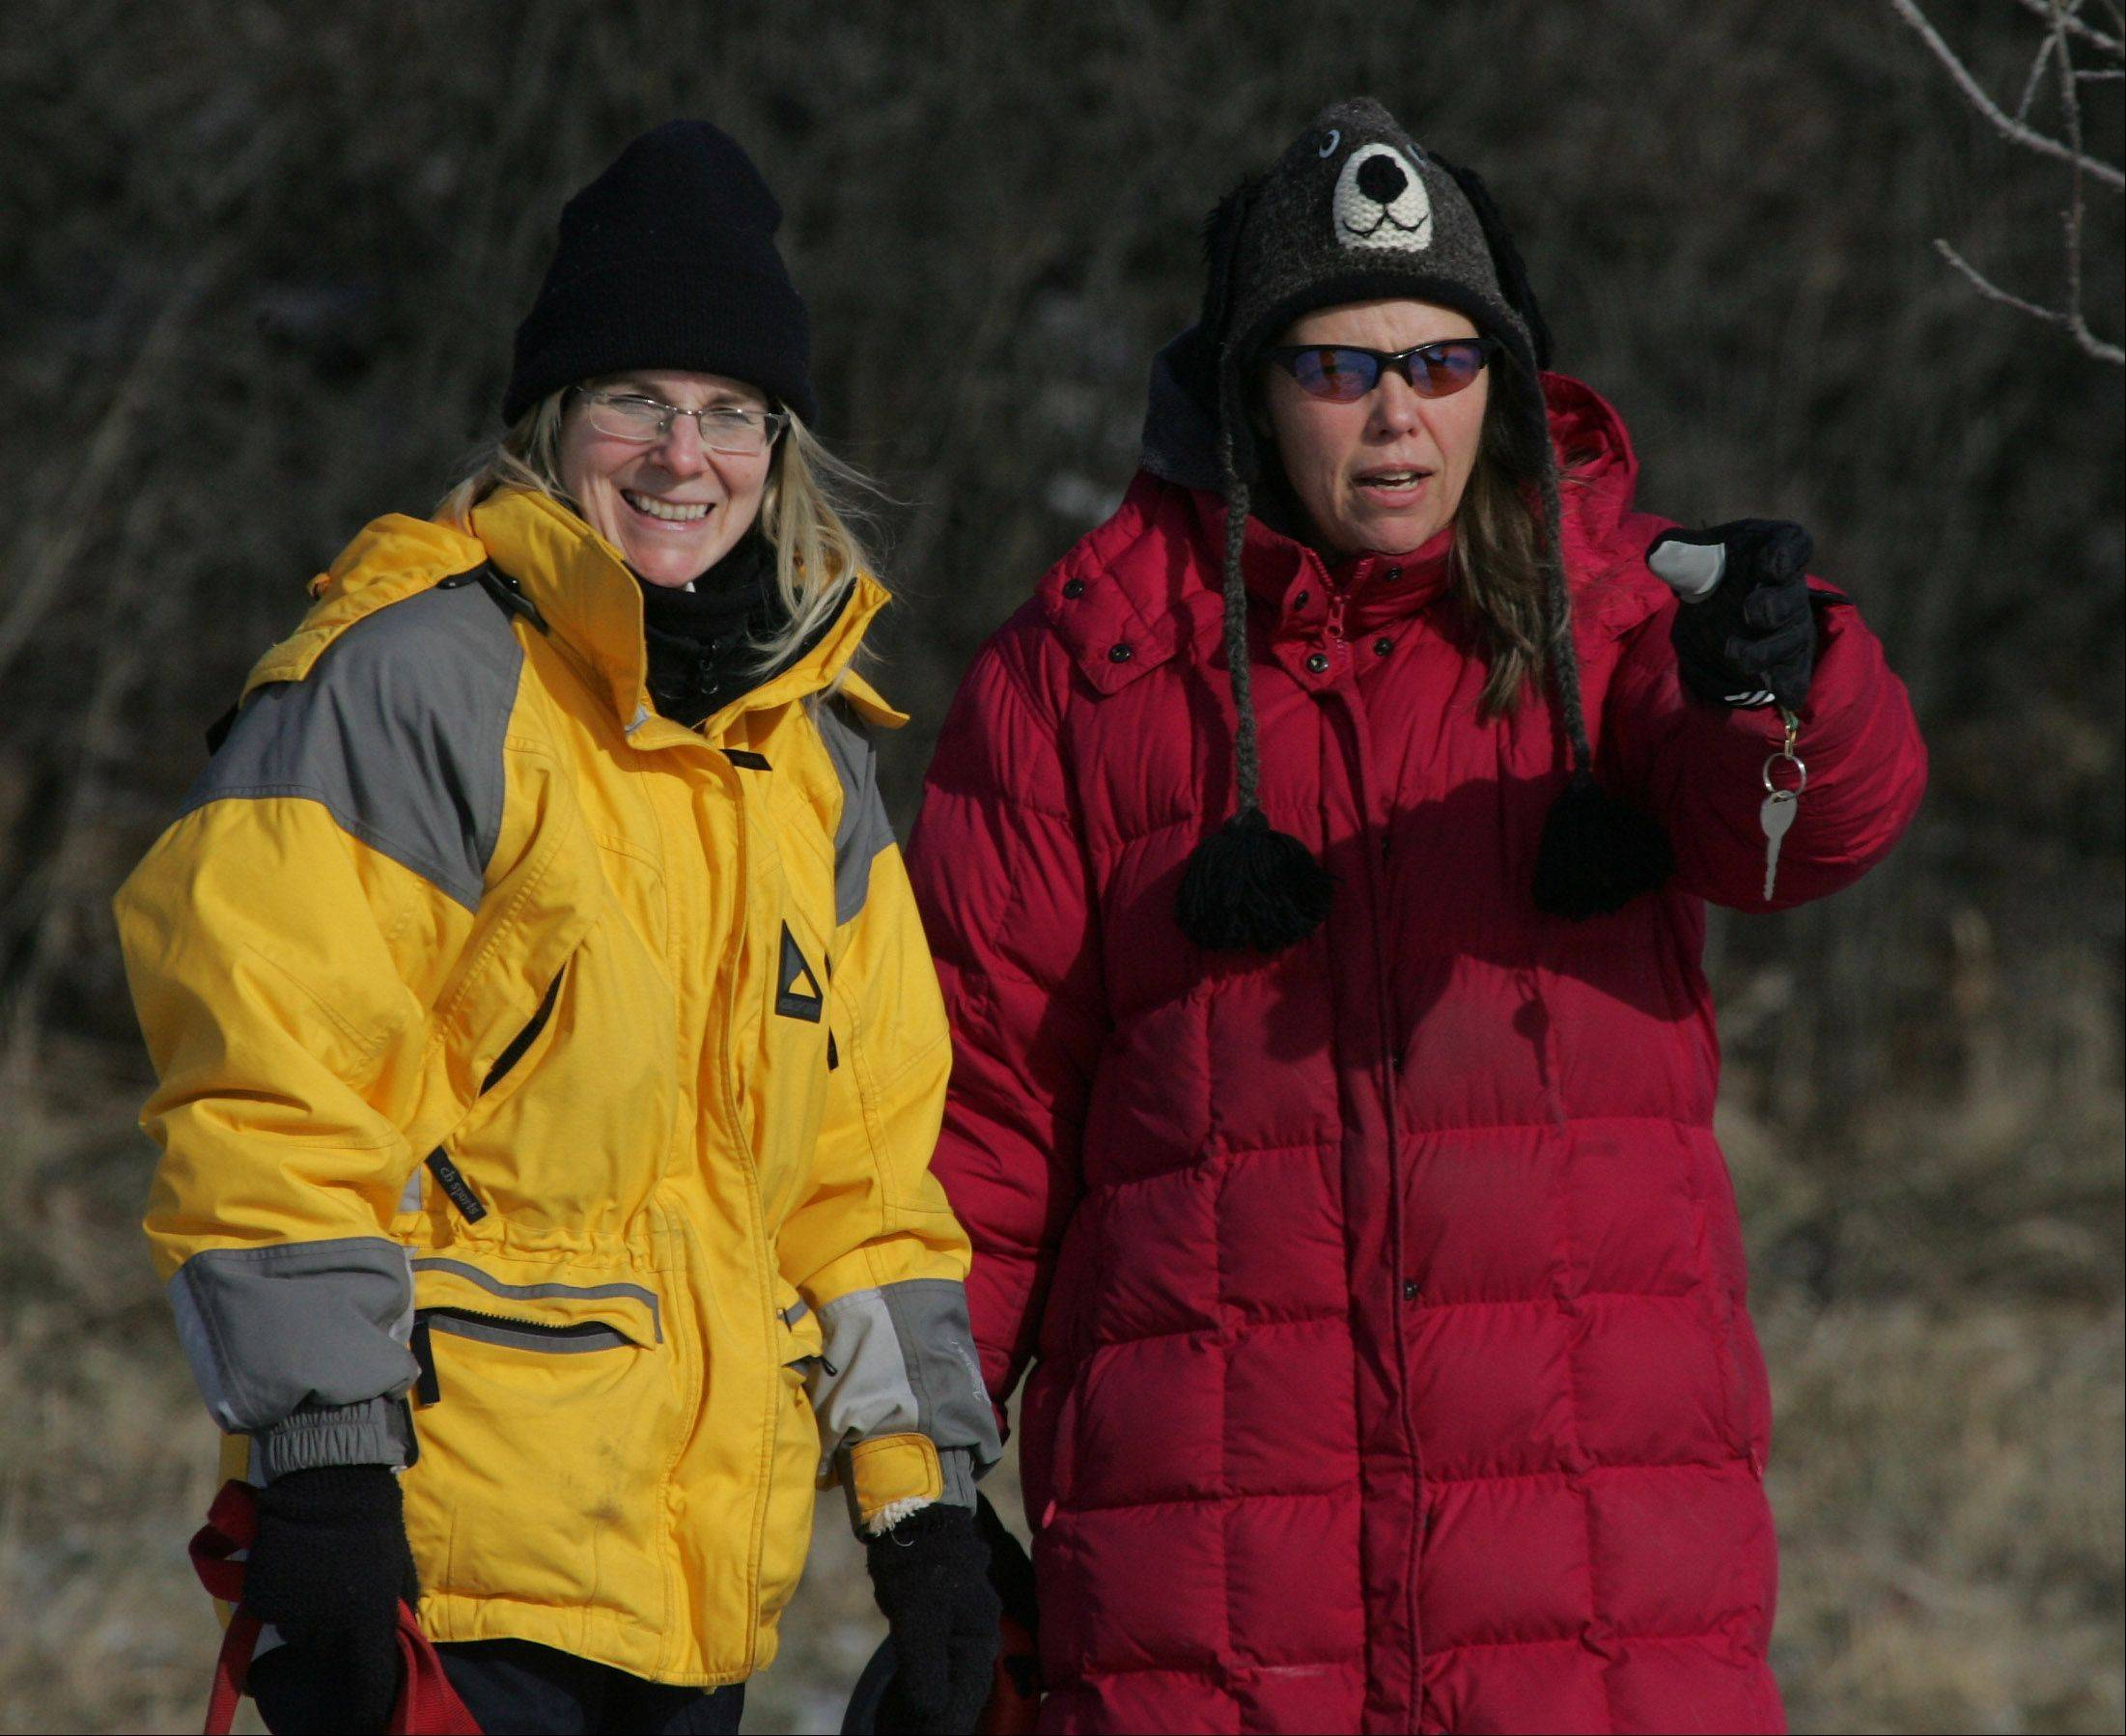 Patty Hanscom, of Ingleside, left, talks with Amy Payleitner, of Wildwood, as they watch their dogs play at the Lakewood Dog Exercise Area near Wauconda on one of the coldest days of the year in Lake County.